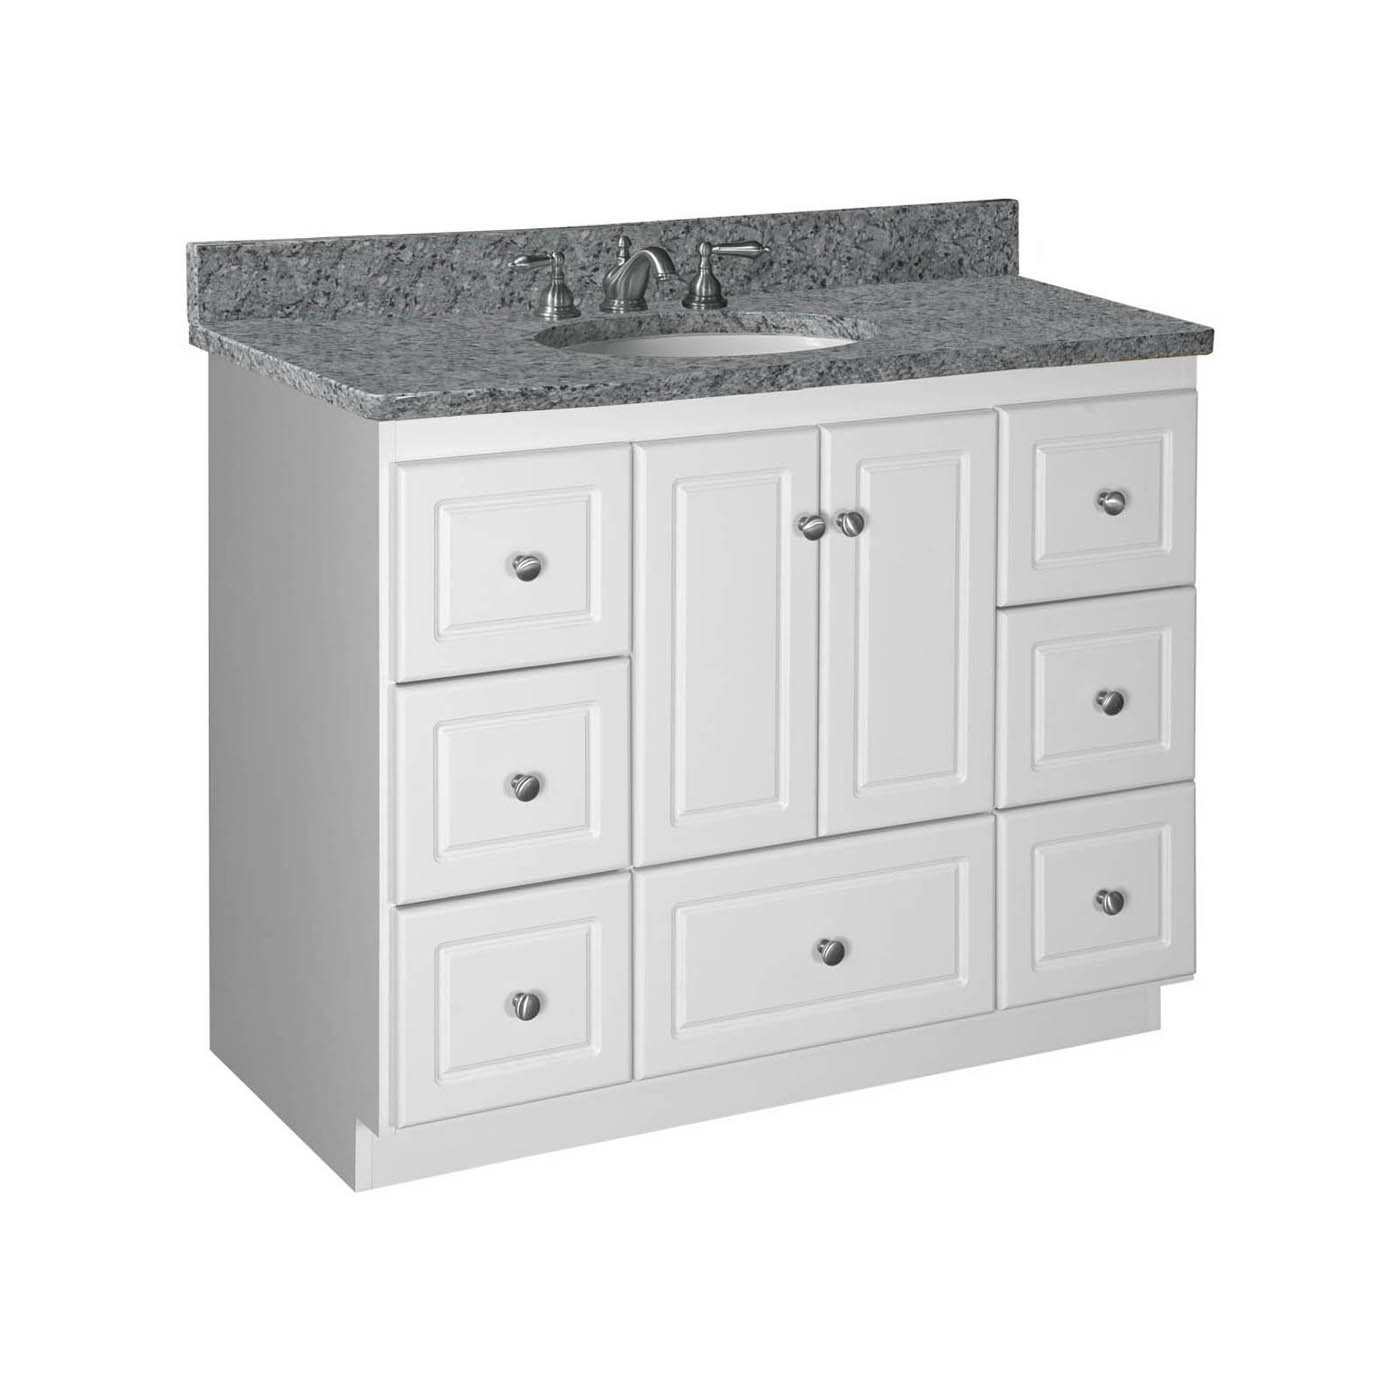 Best 42 Inch Bathroom Vanity Cabinet Gallery Bathroom Design Ideas